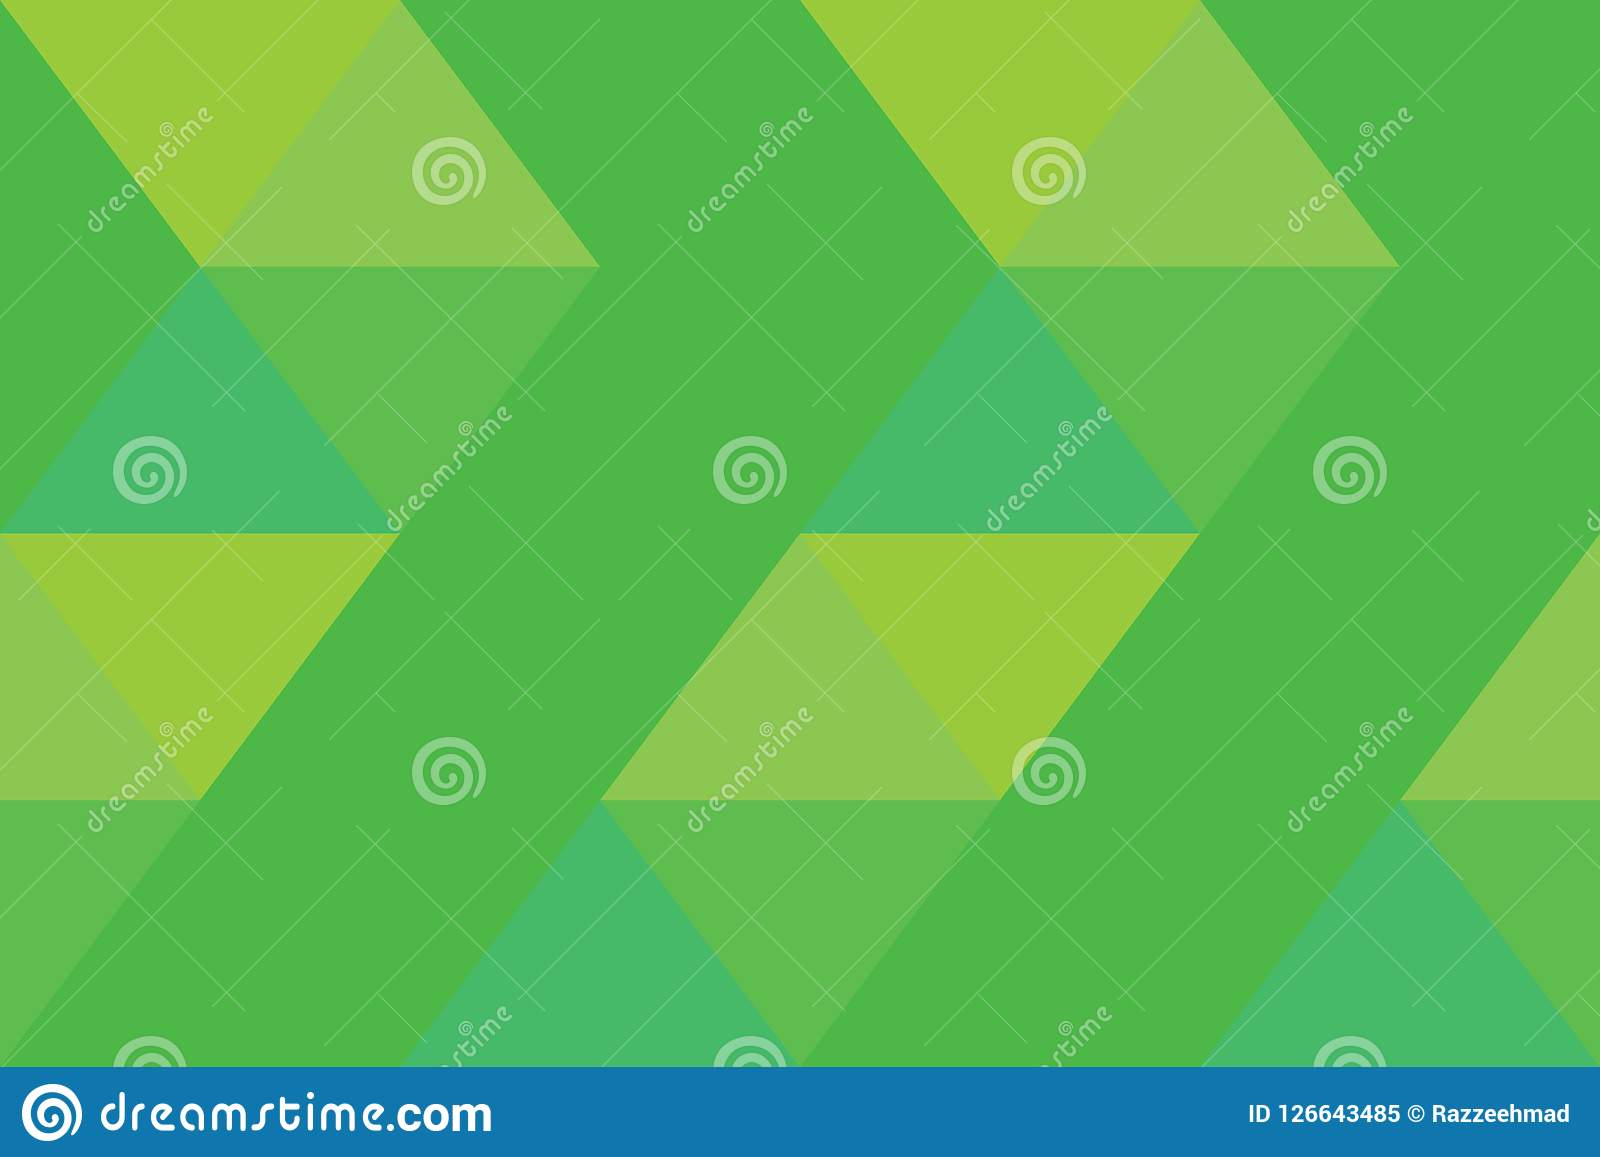 Geomatric style, Texture modern green gradation background banner triangle wallpaper.